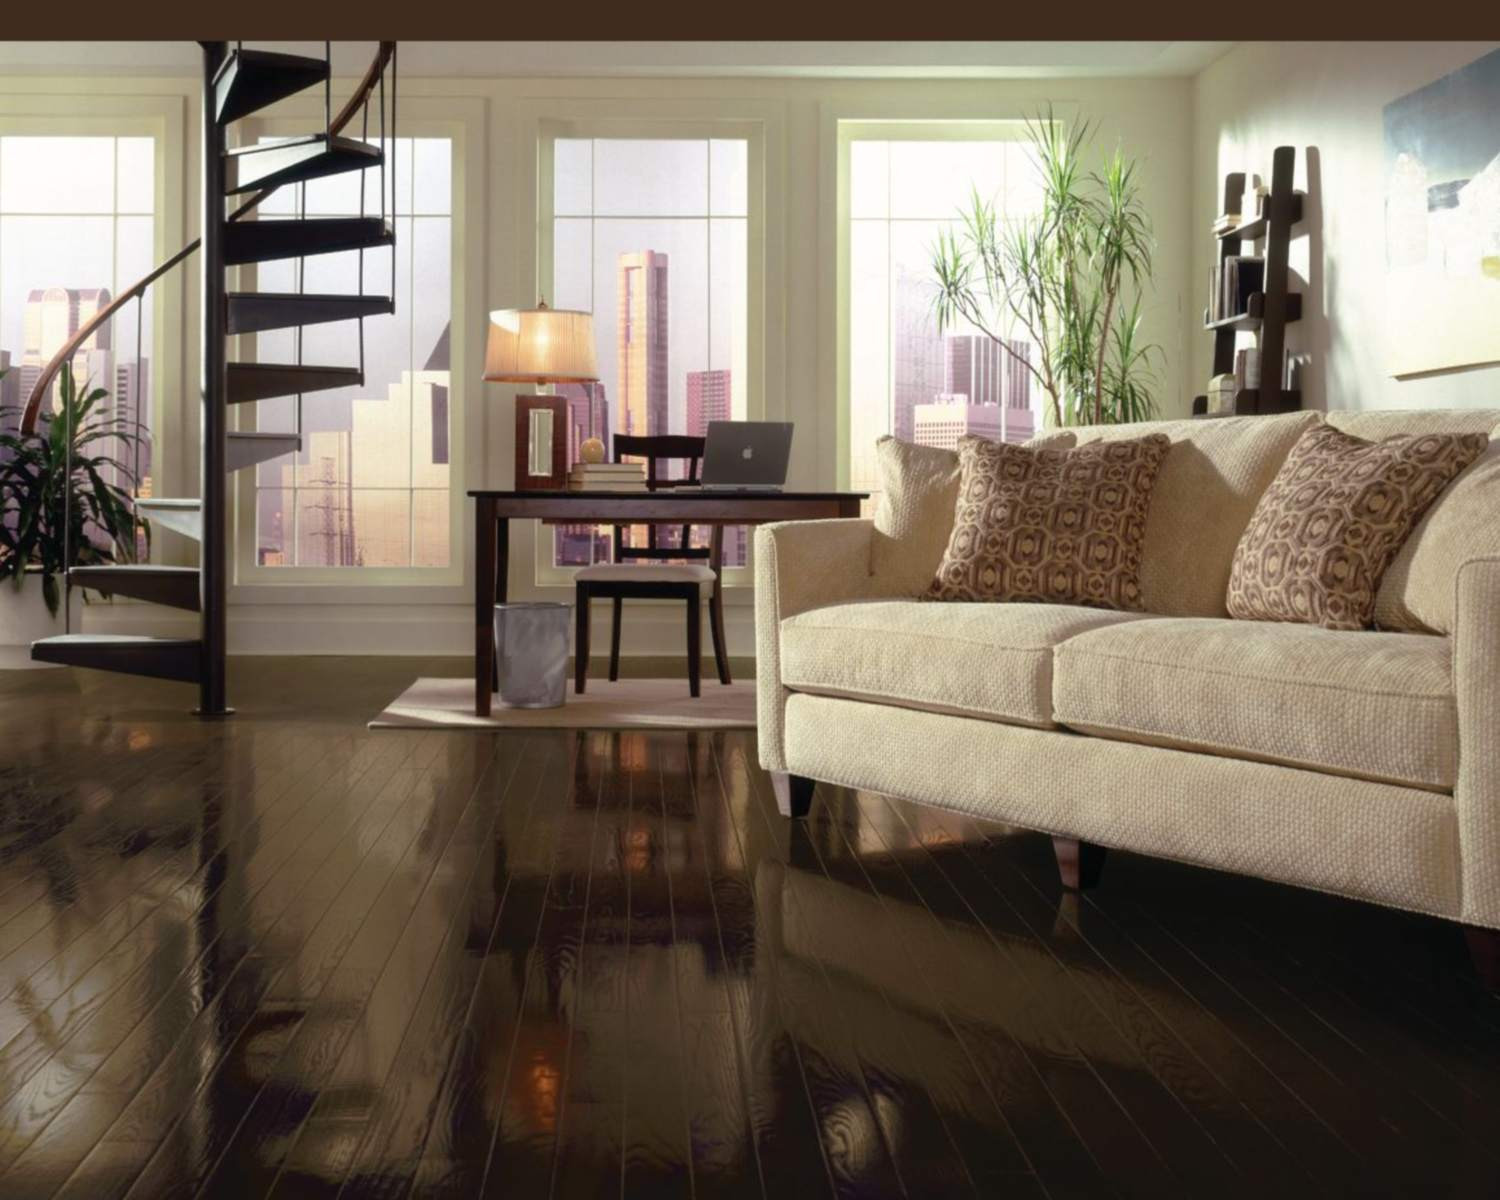 costco hardwood flooring installation cost of top 5 brands for solid hardwood flooring pertaining to a living room with bruce espresso oak flooring